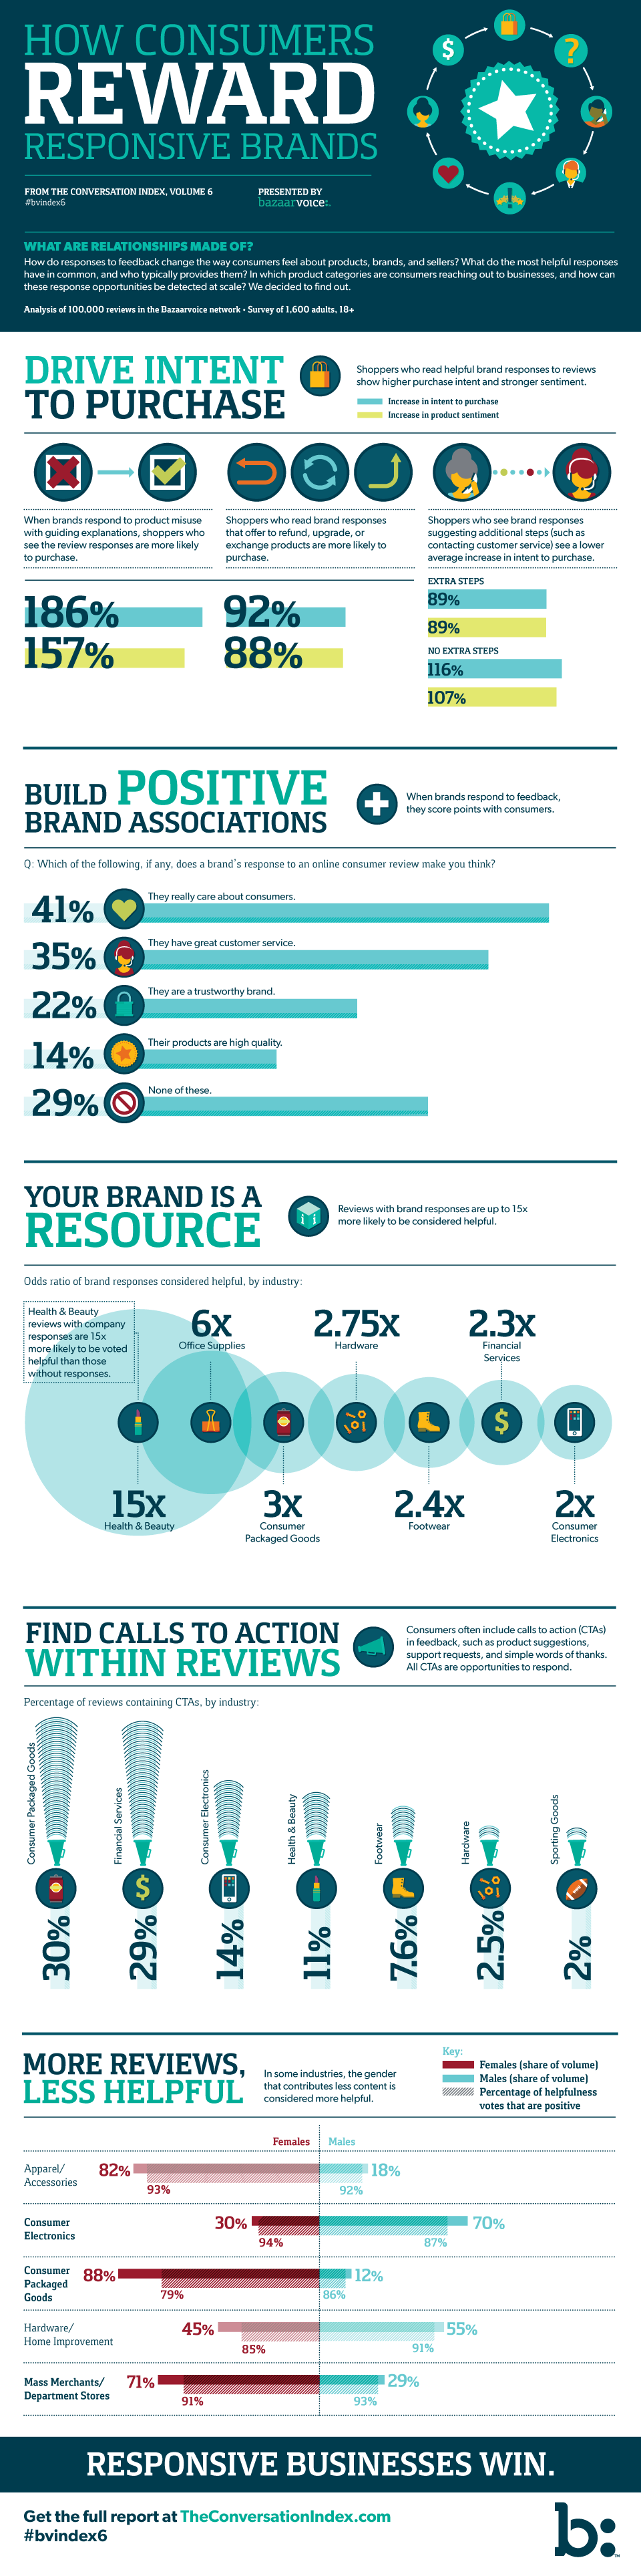 Infographic: How Consumers Reward Responsive Brands